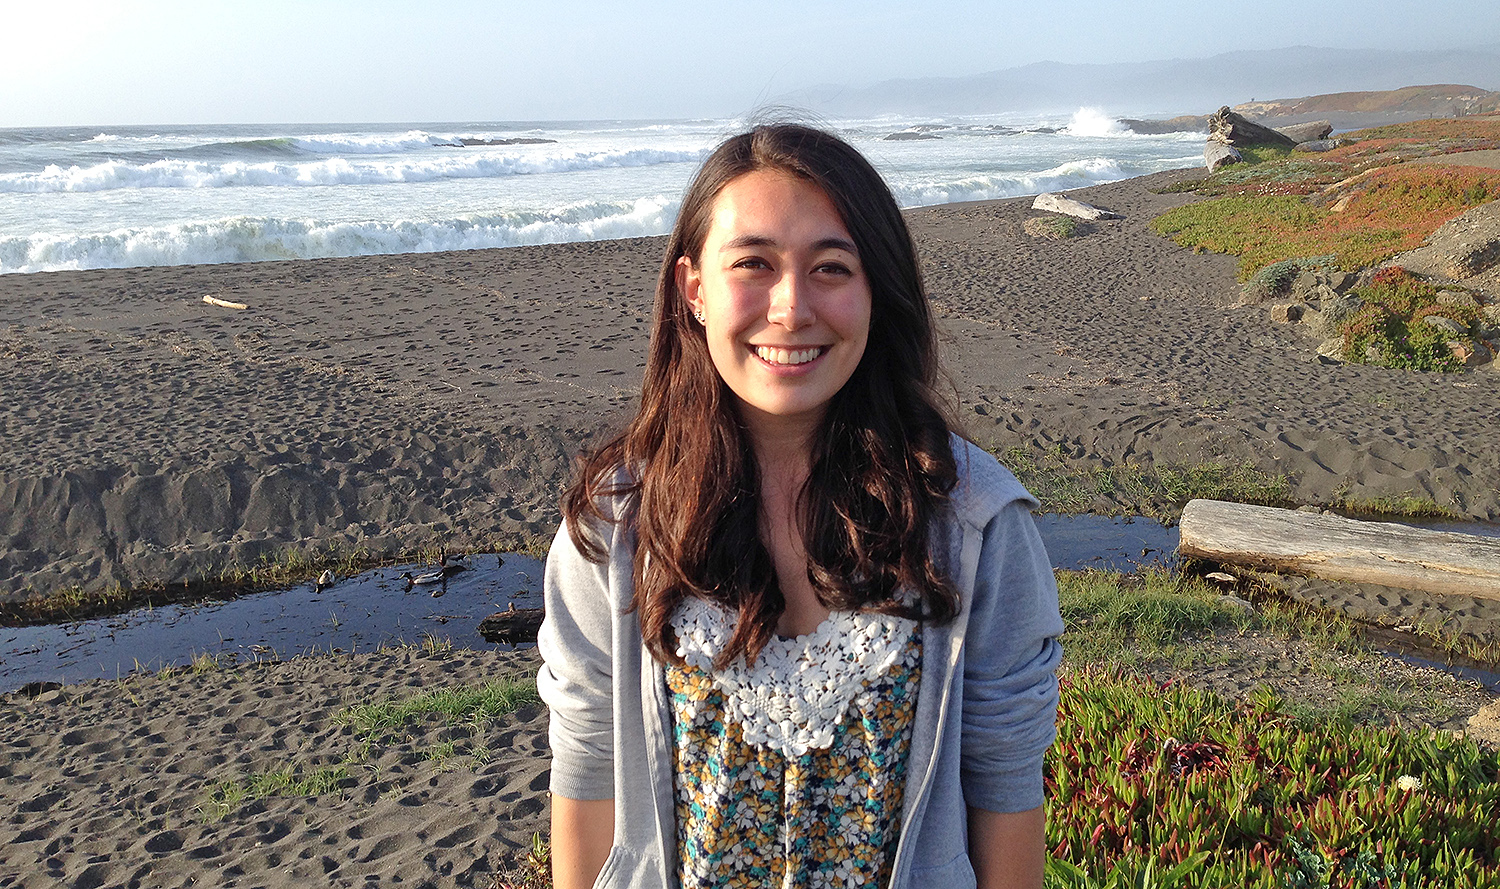 Doris Duke Conservation Scholar Olivia Won '18 is interested in addressing issues of climate justice by reorienting environmental action to work through a place-based, social justice lens.